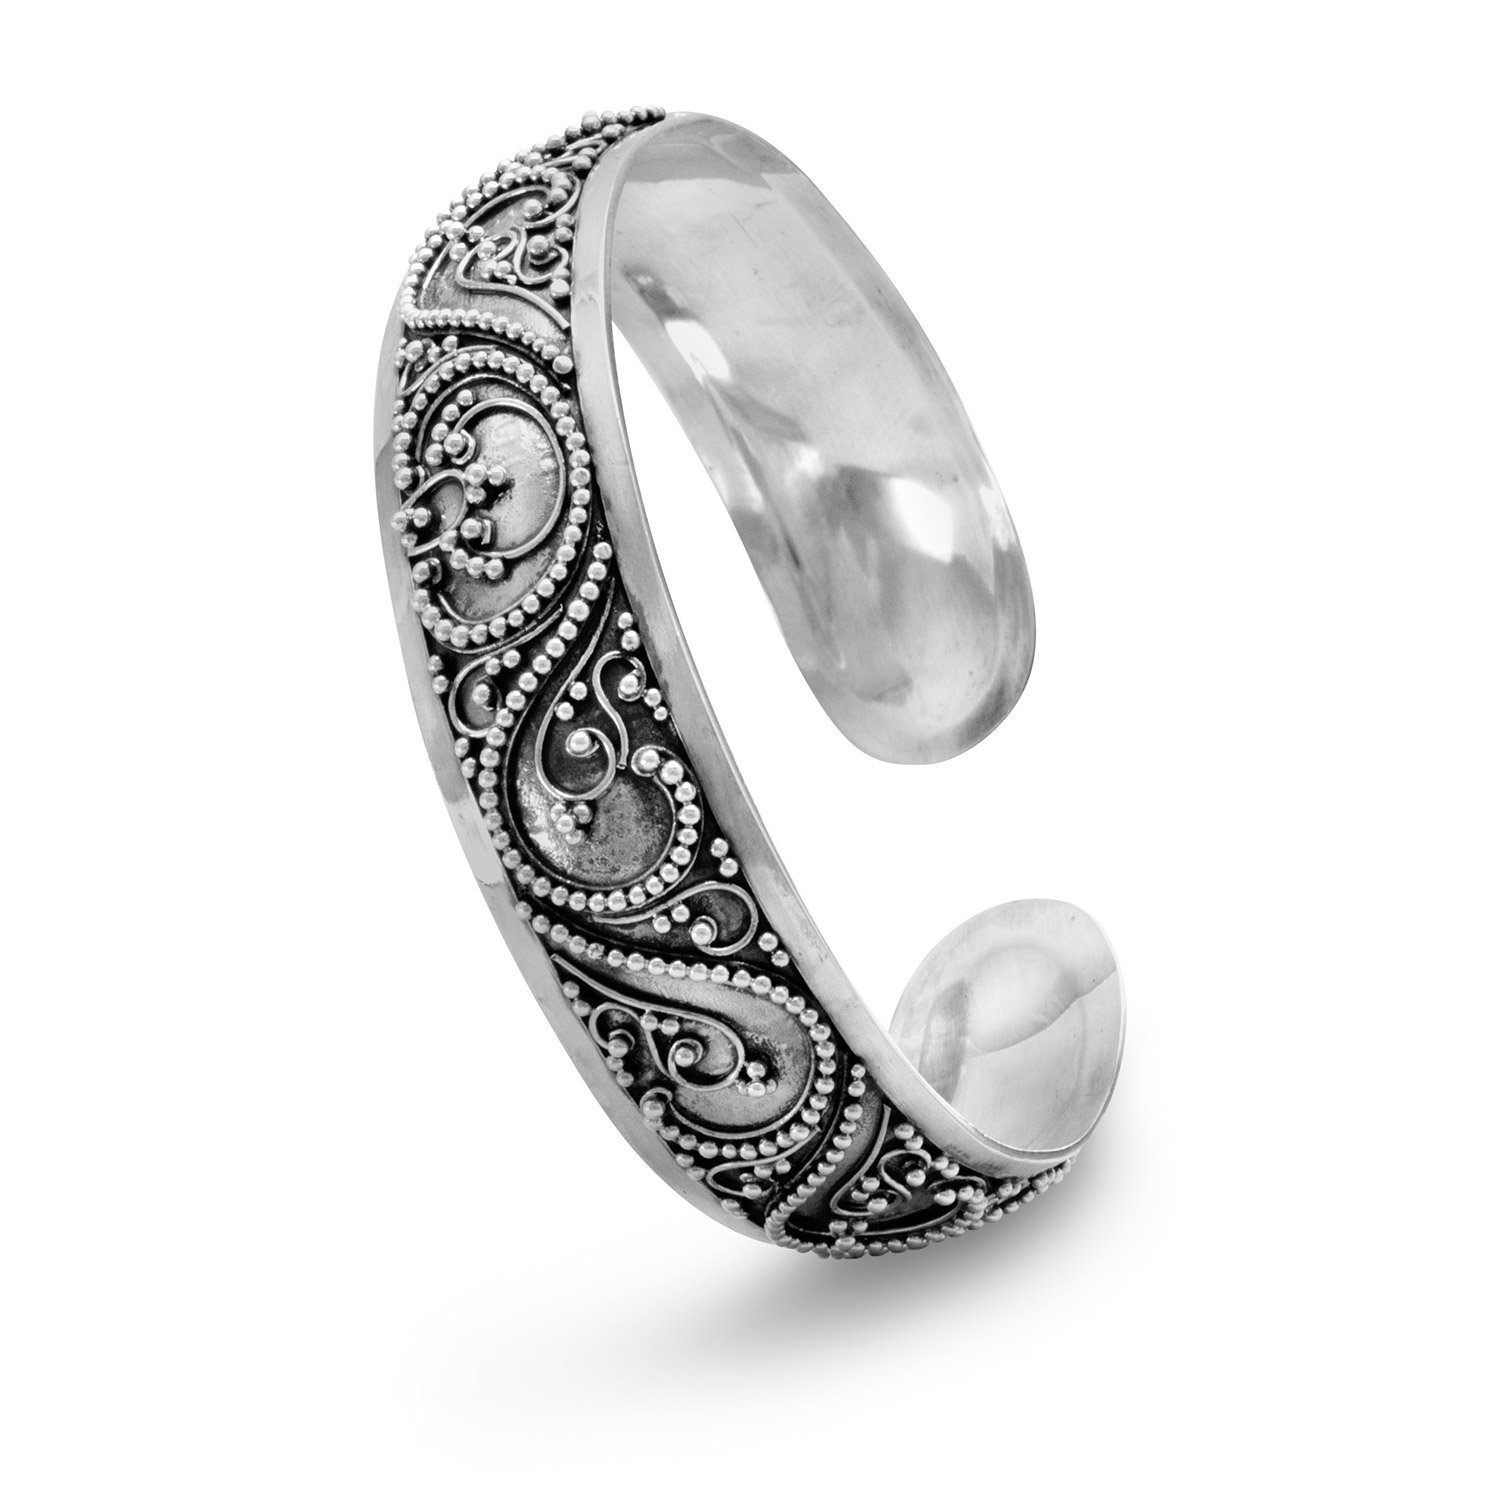 Cuff With Bead Filigree Design 15mm Sterling Silver Beaded Bali Style Cuff Bracelet